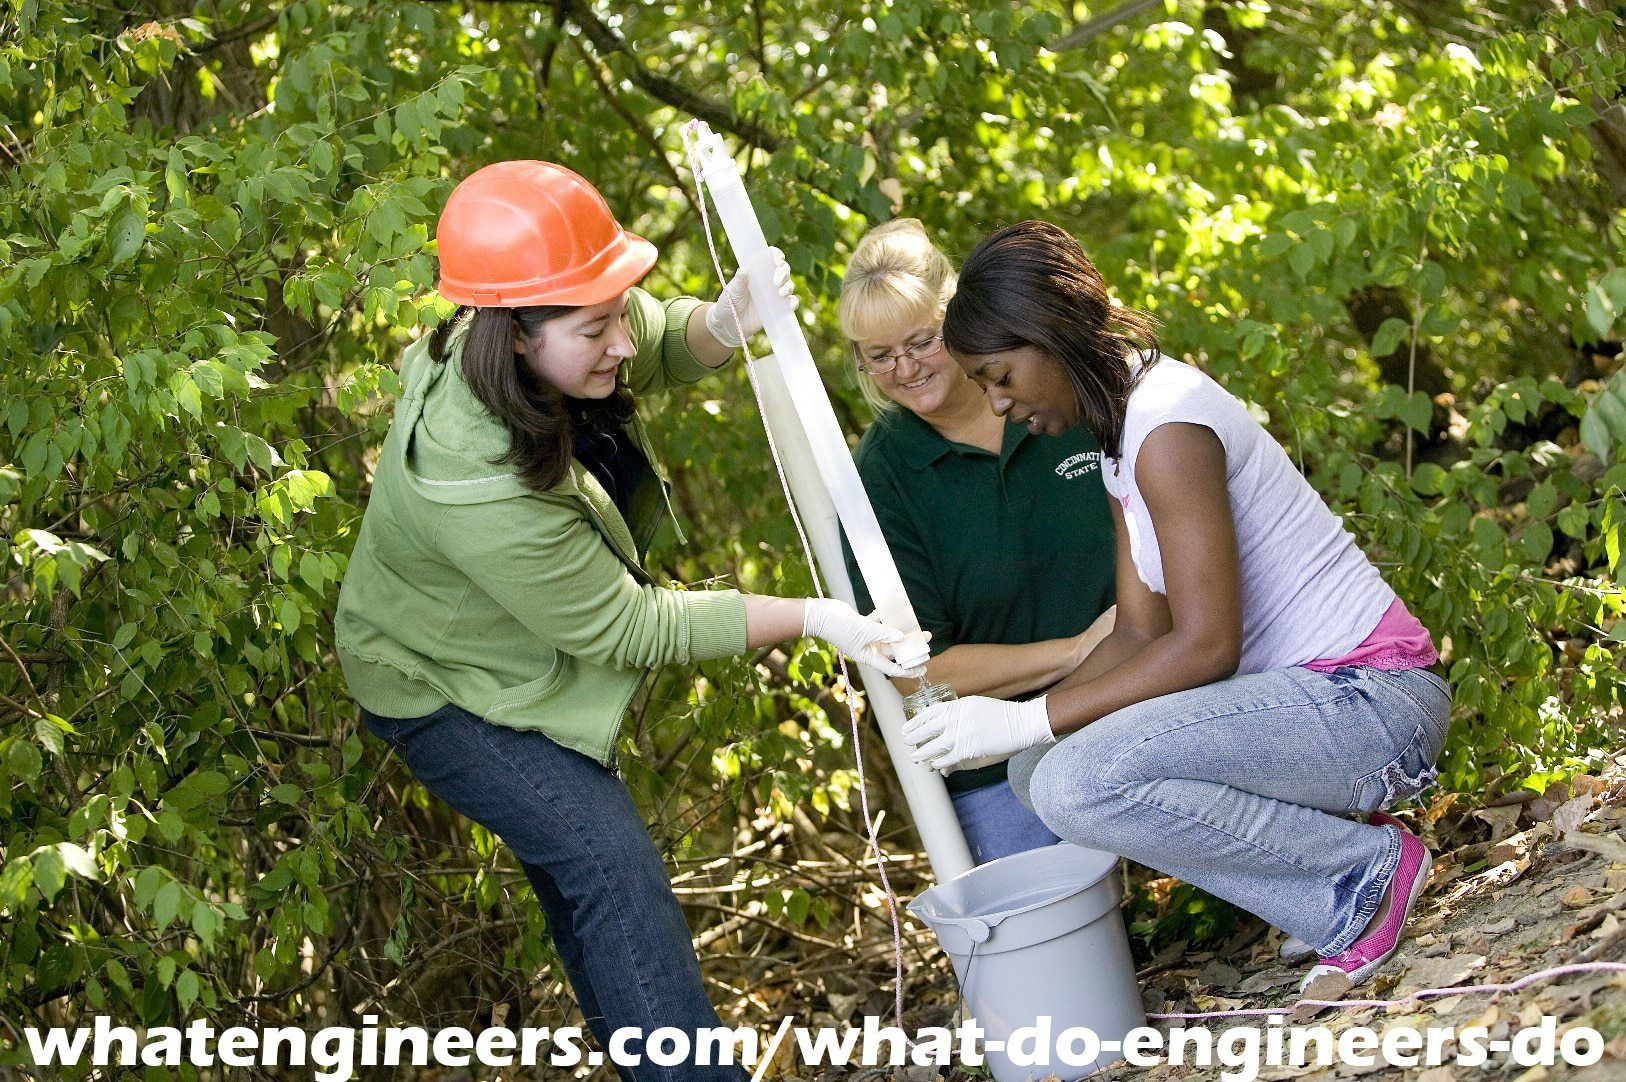 what do environmental engineer do to keep environment clean and safe